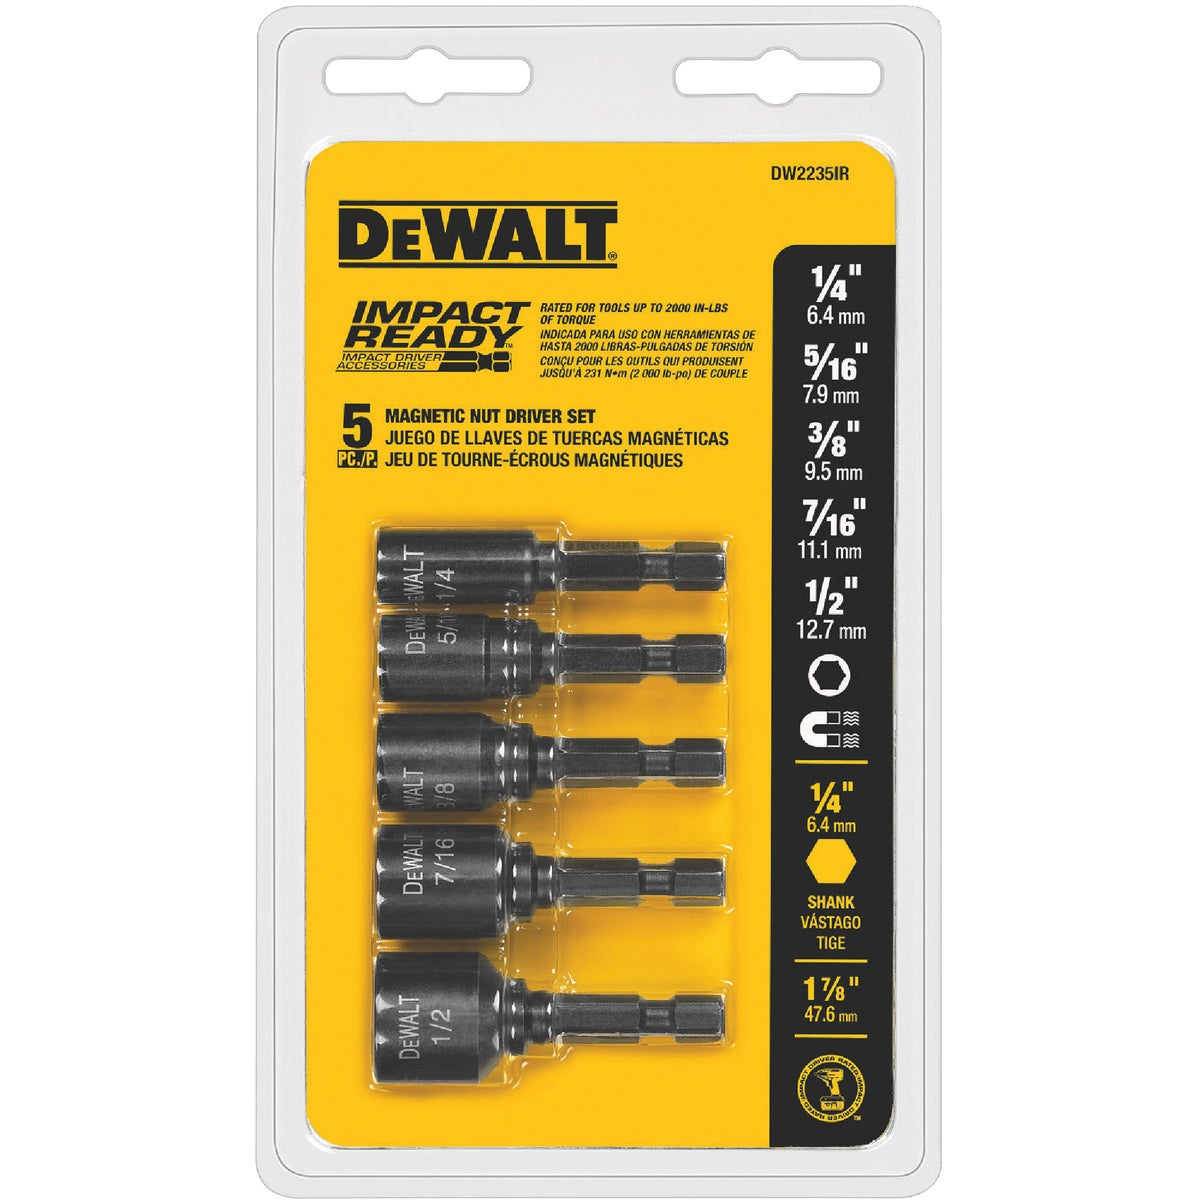 5PC IMPACT NUTDRIVER SET - DW2235IR by DeWalt